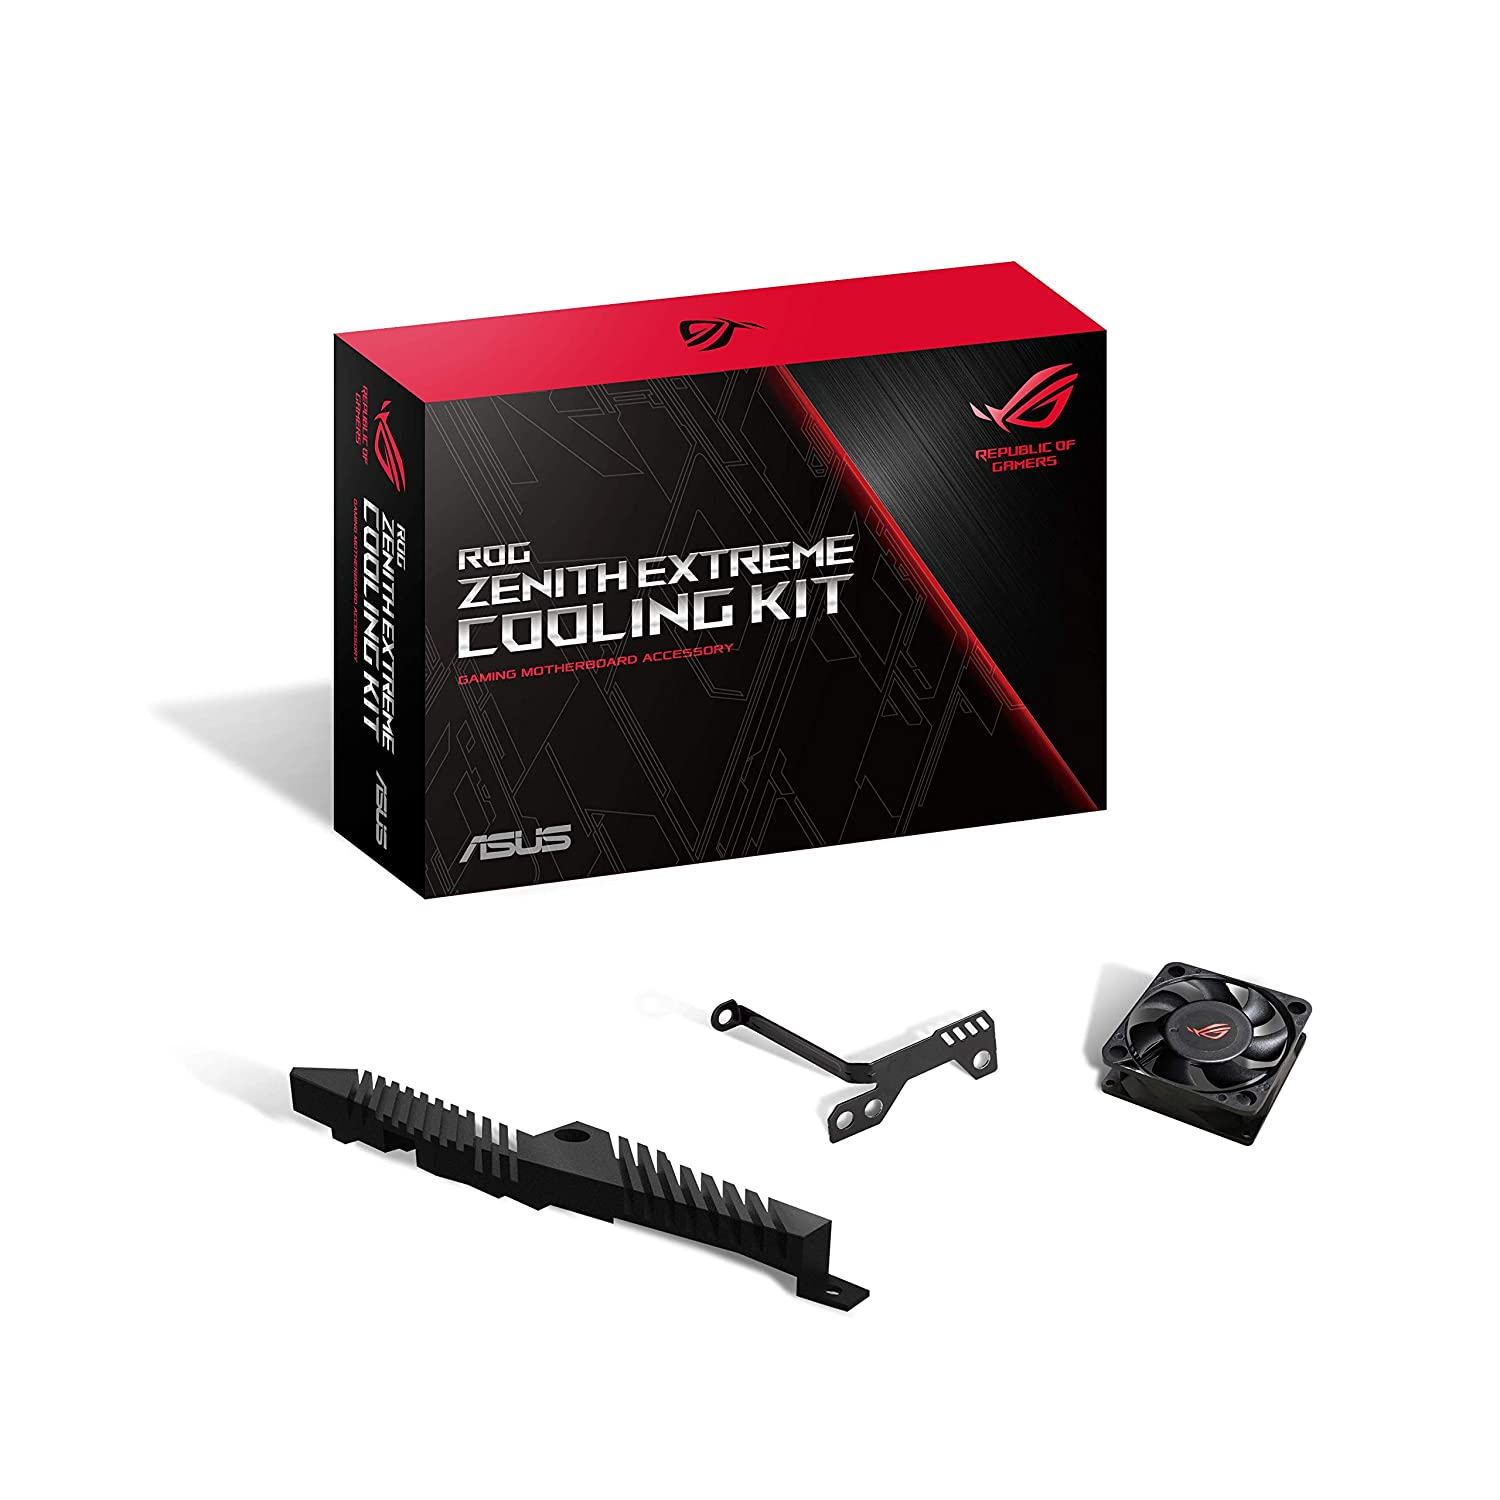 ASUS ROG Zenith Extreme AMD Ryzen Thread Ripper 2 TR4 Cooling Kit